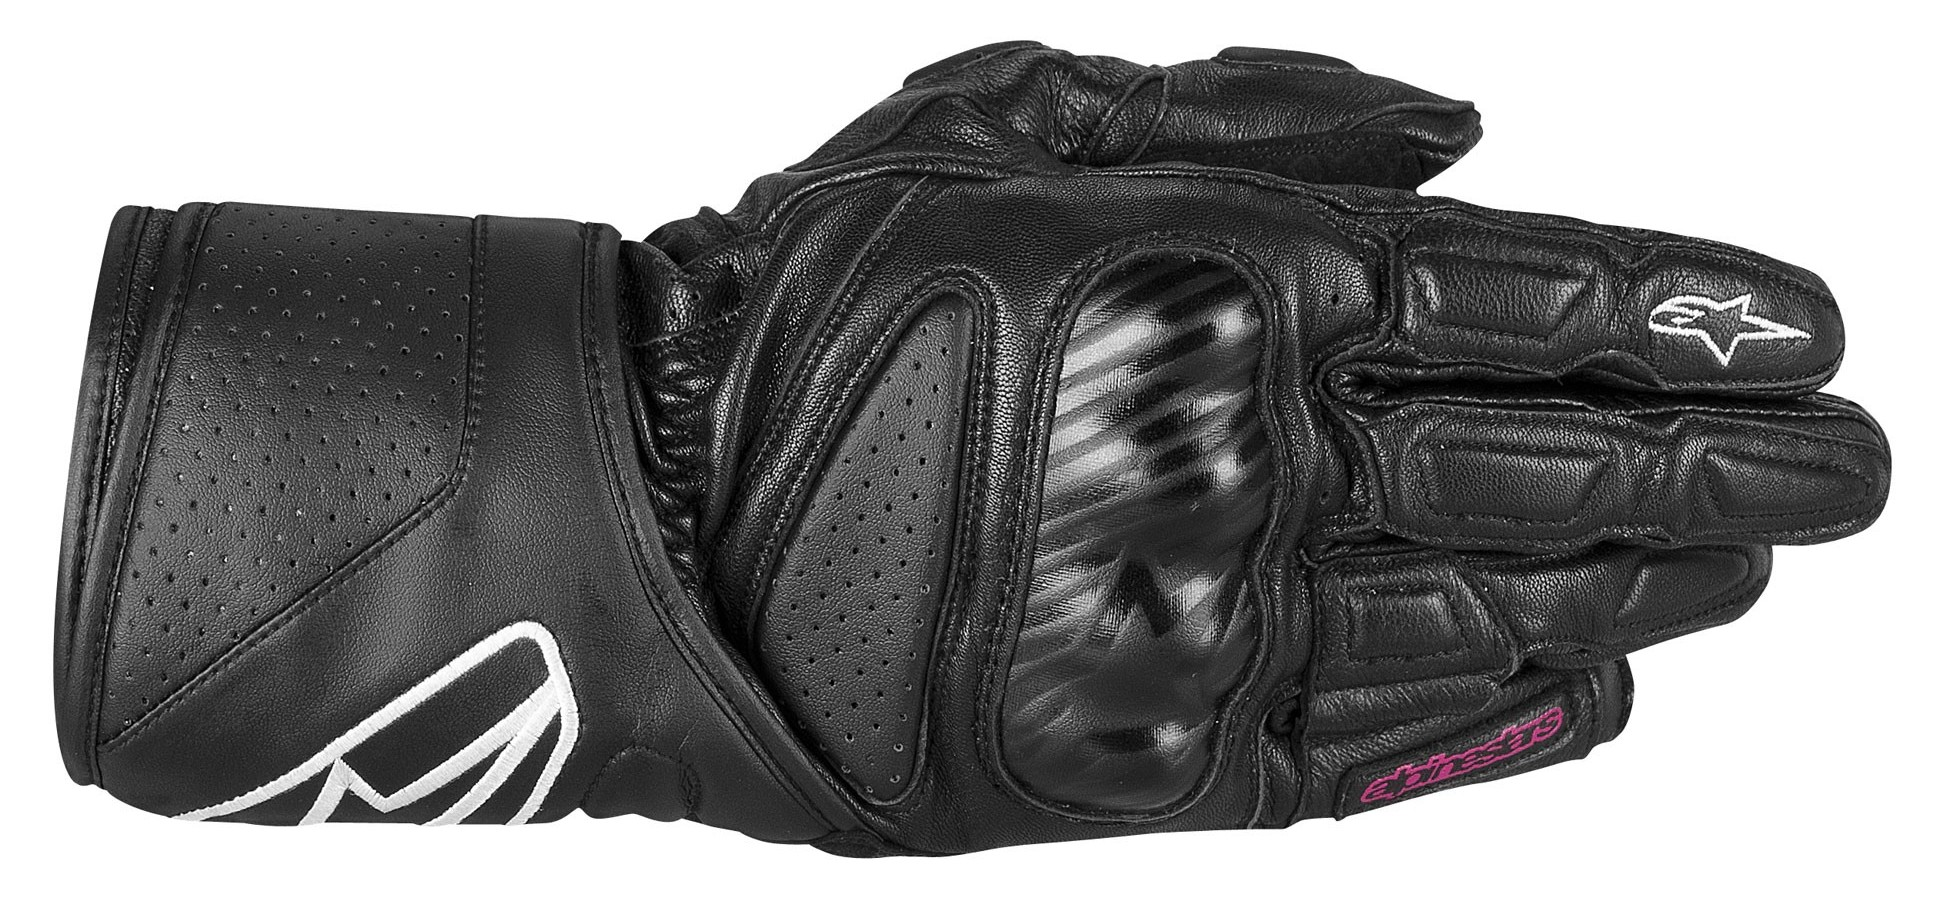 alpinestars_womens_stella_sp2_motorcycle_gloves